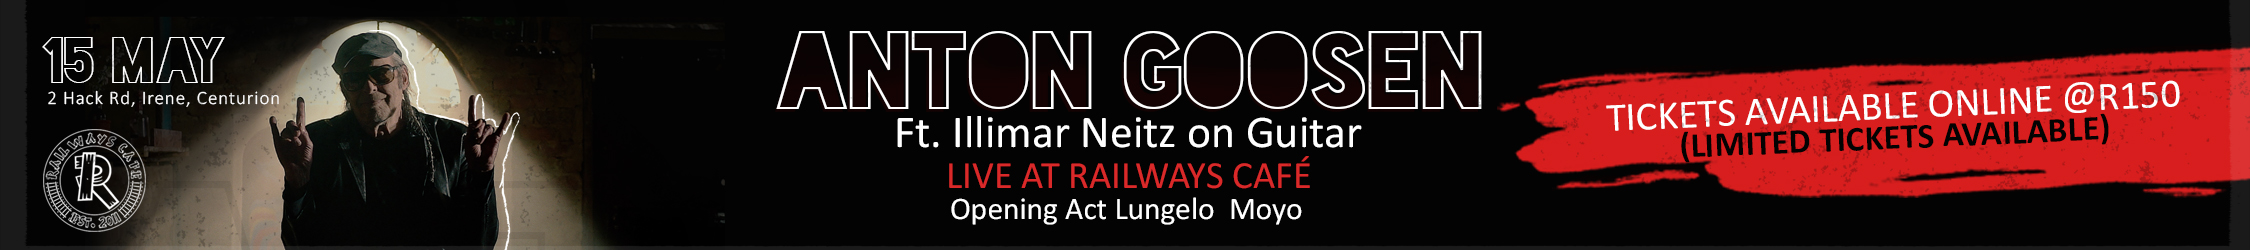 Tickets for Anton Goosen Live at Railways Cafe in Pretoria from Tixsa